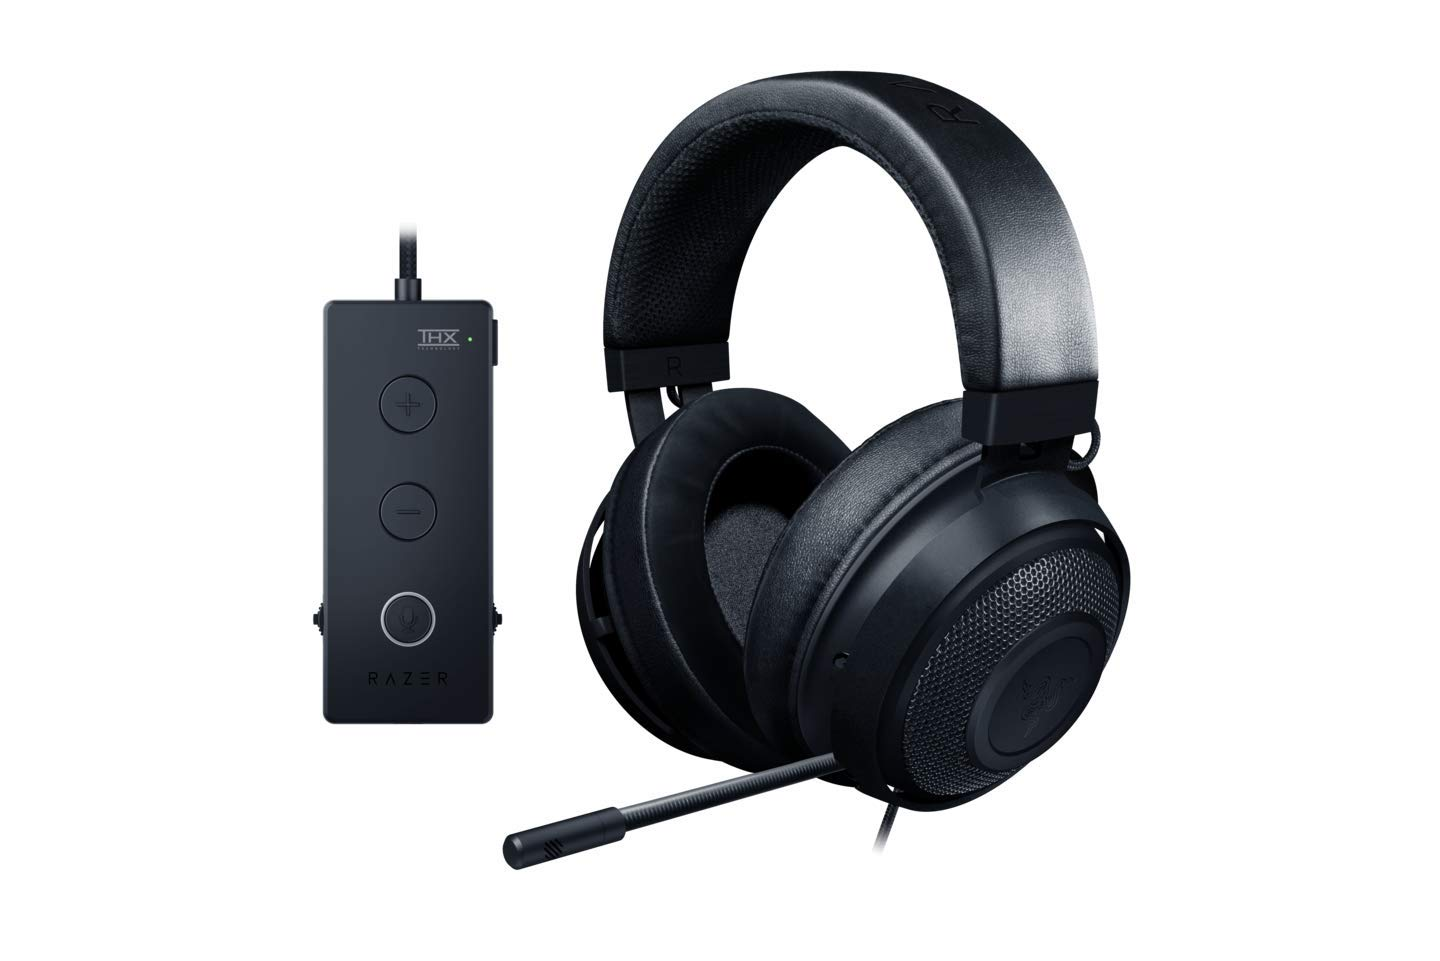 Razer Kraken Tournament Edition - $78.90 - $21.09 off or 21%